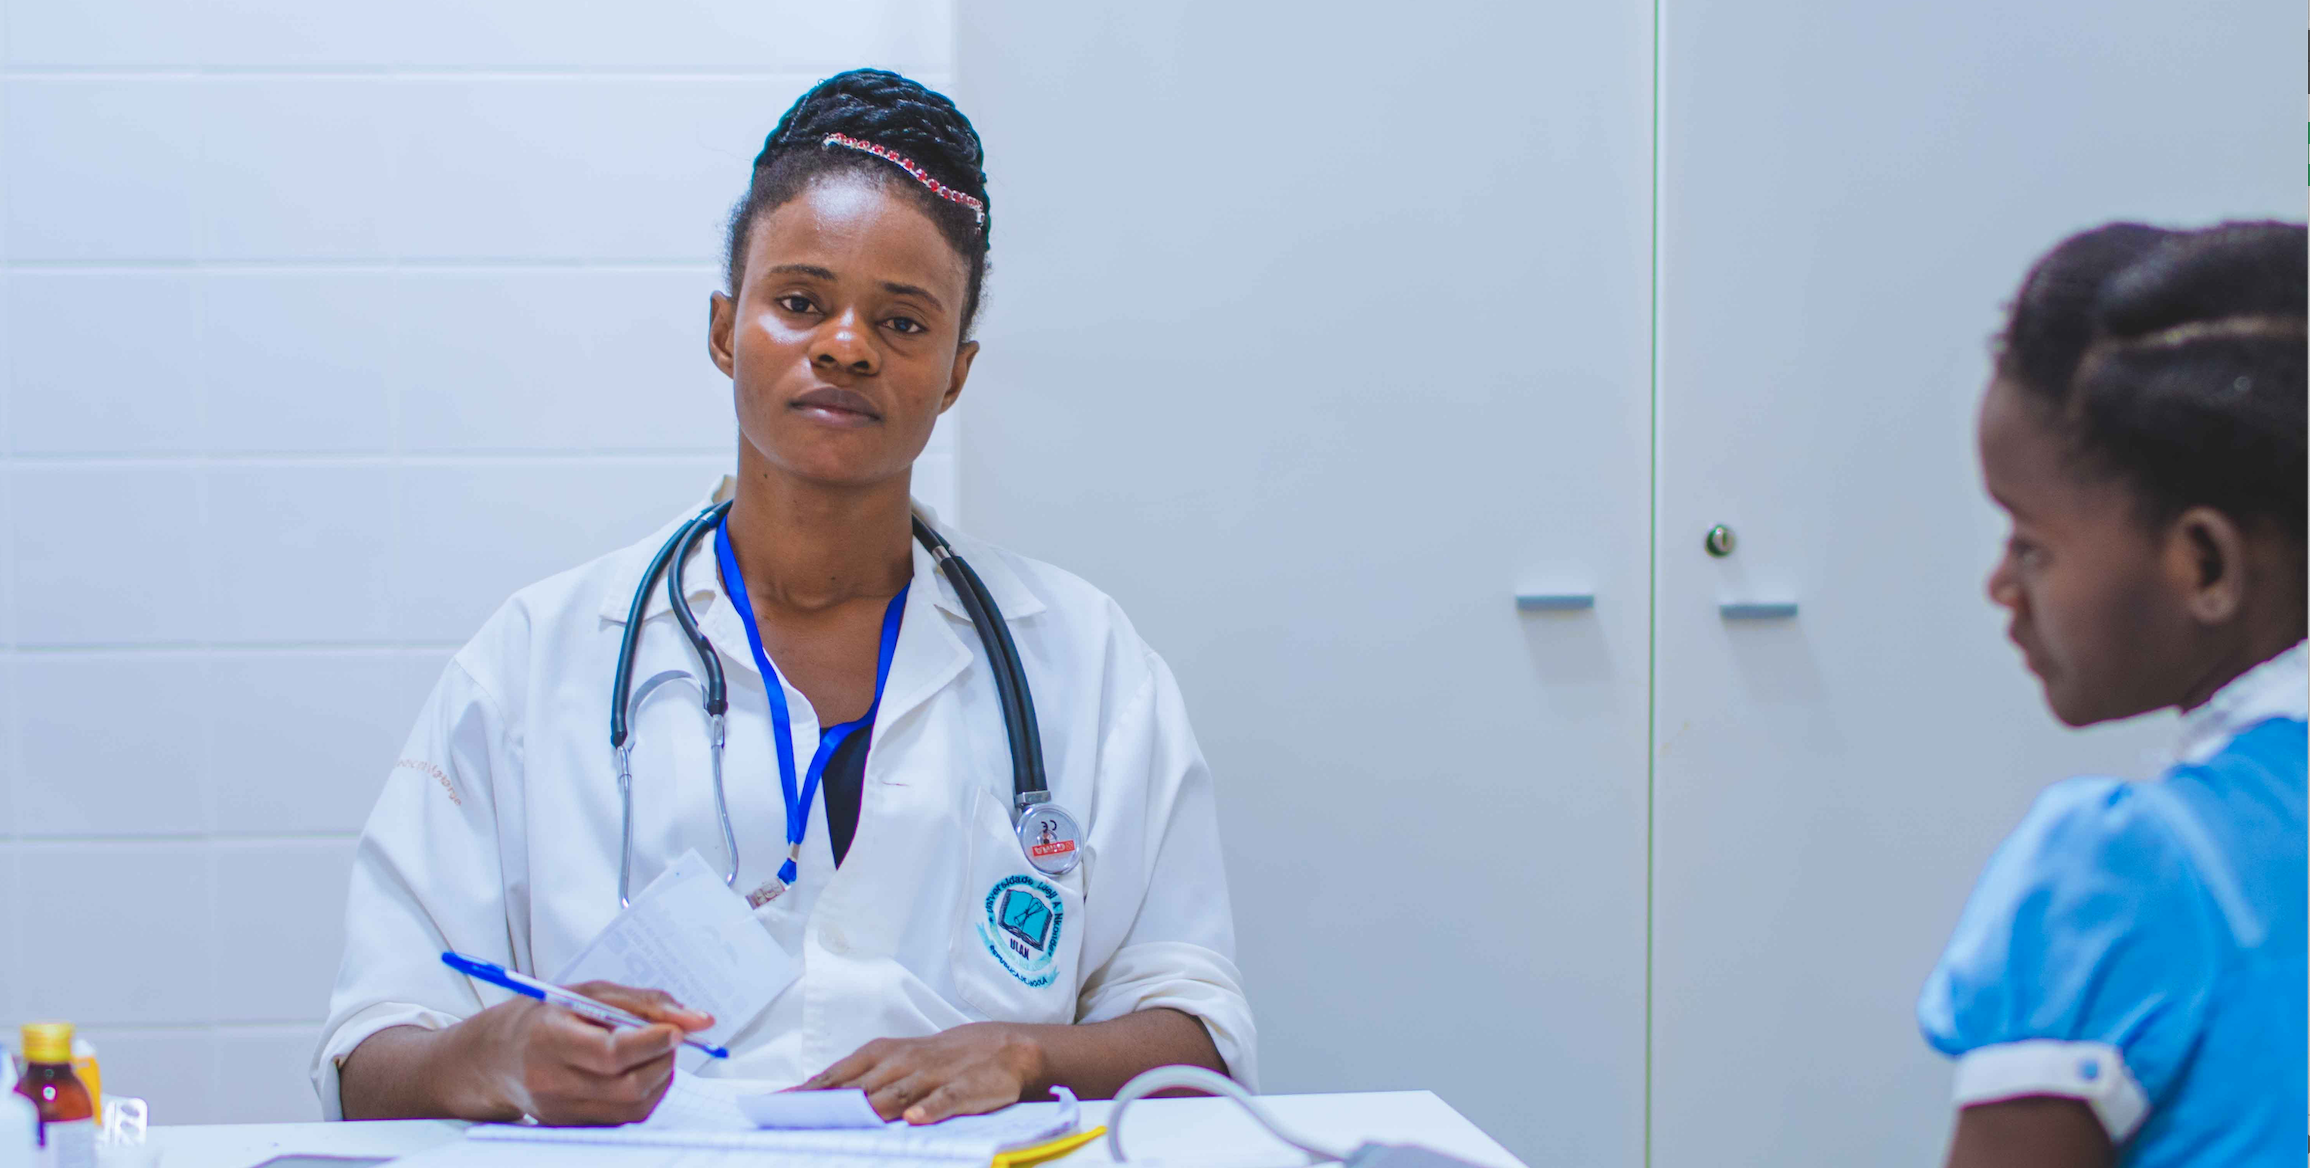 Healthcare in Africa : are Public Private Partnerships and e-Health sound options to advance public health with limited public funds ?